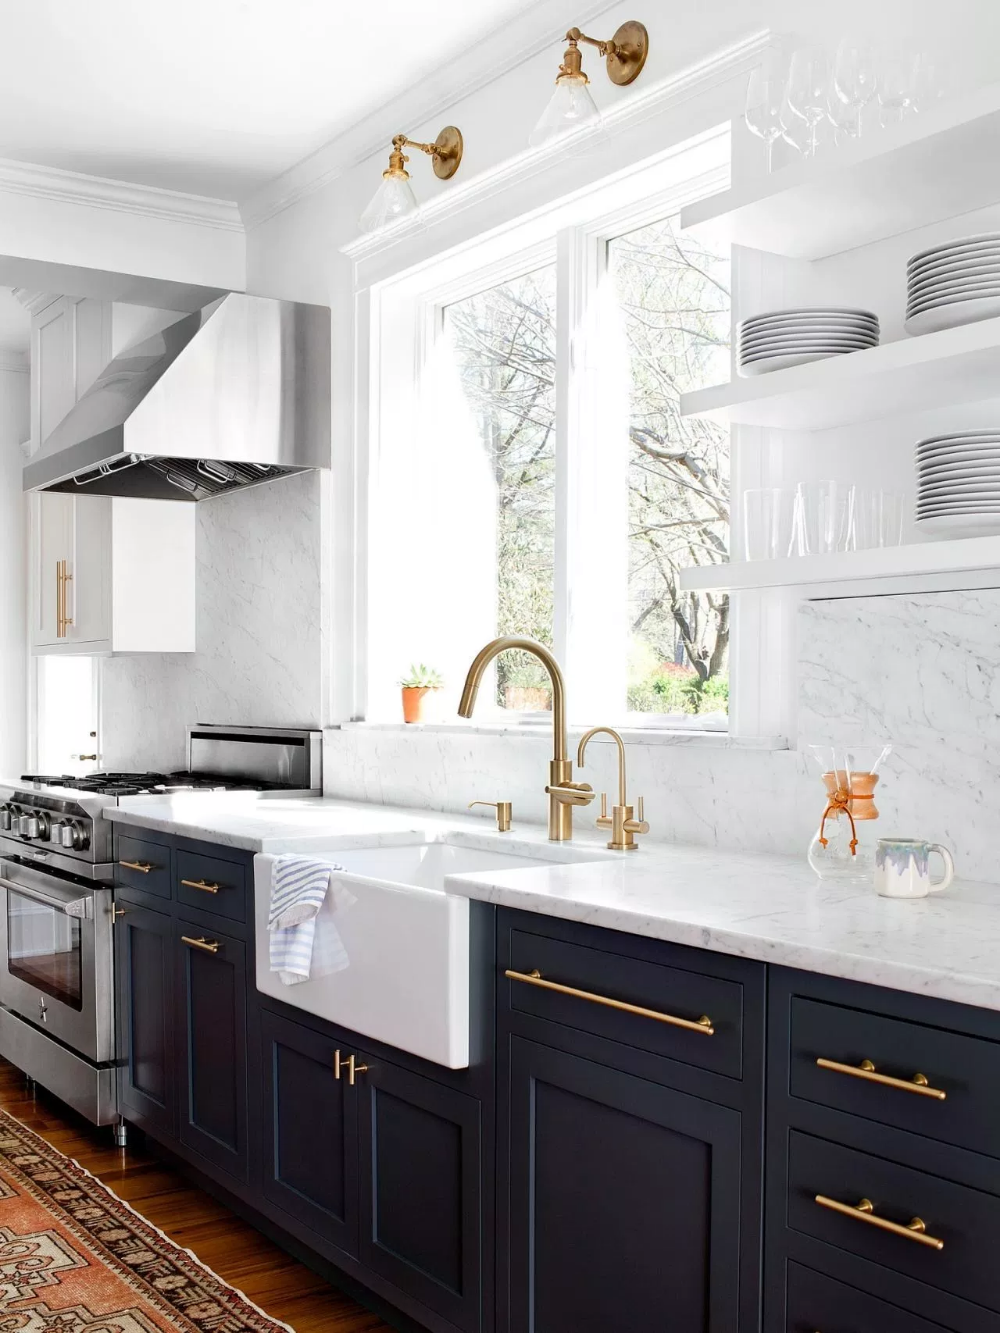 9 Catchy Kitchen Cabinet Hardware Ideas 9 [A Guide for ...